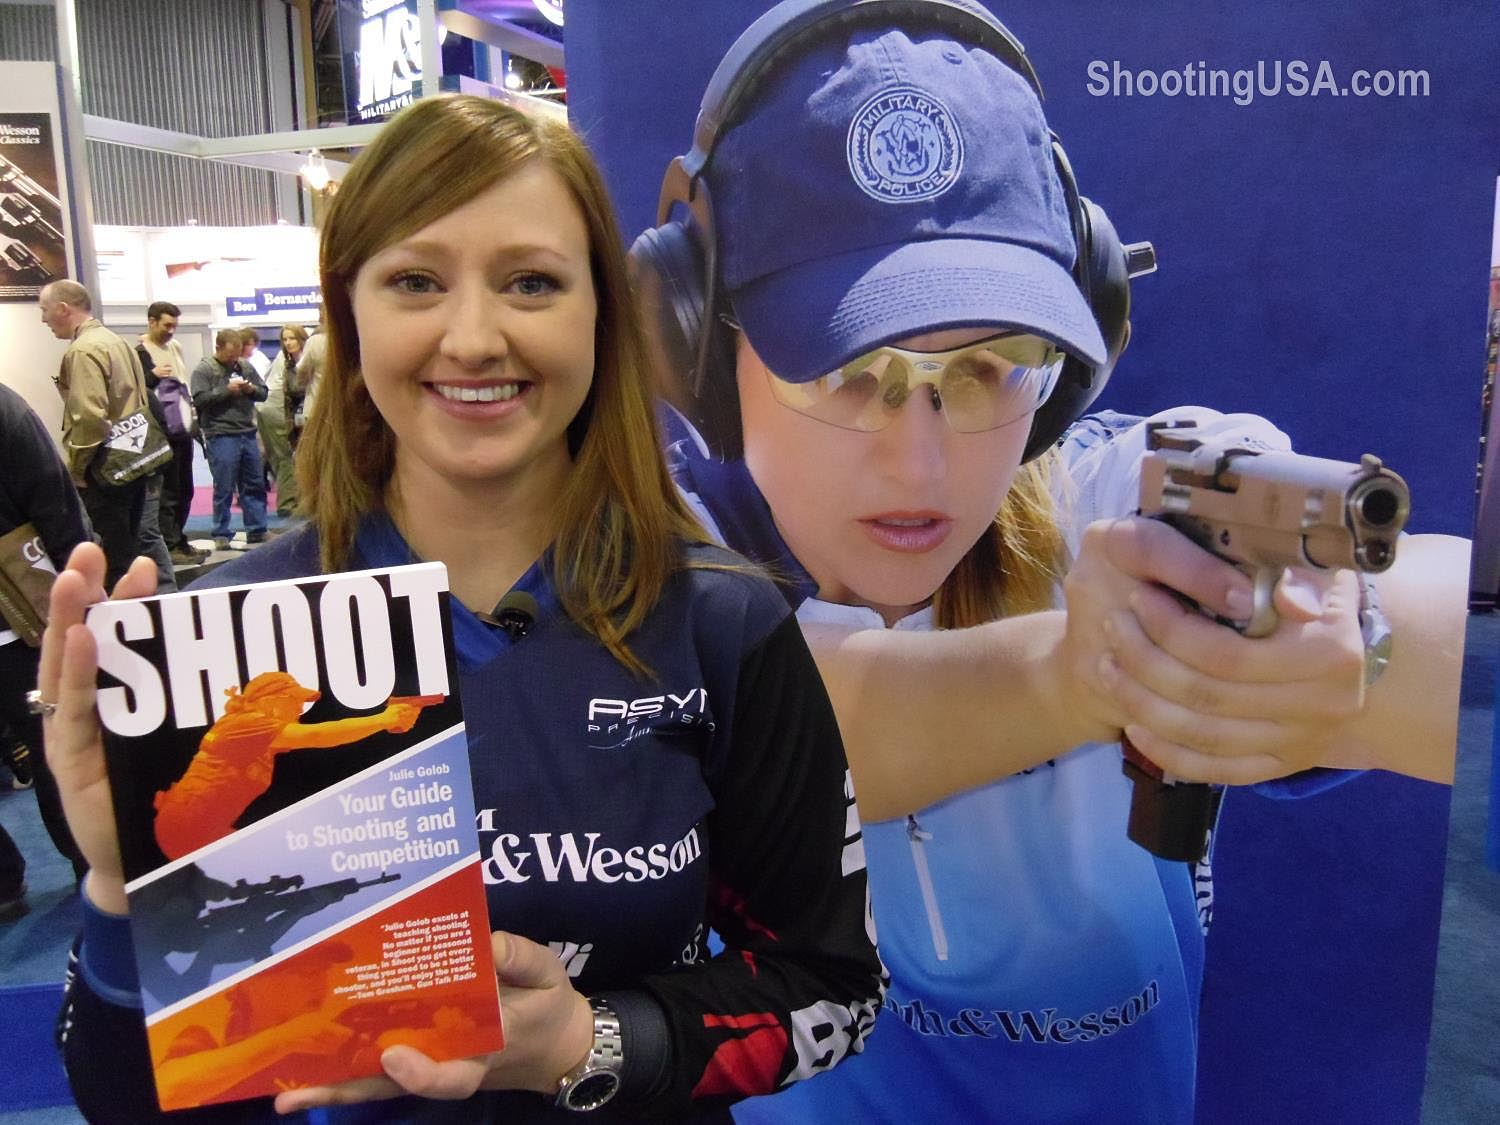 Julie shows off her book at the 2012 SHOT Show. Photo courtesy of ShootingUSA.com.